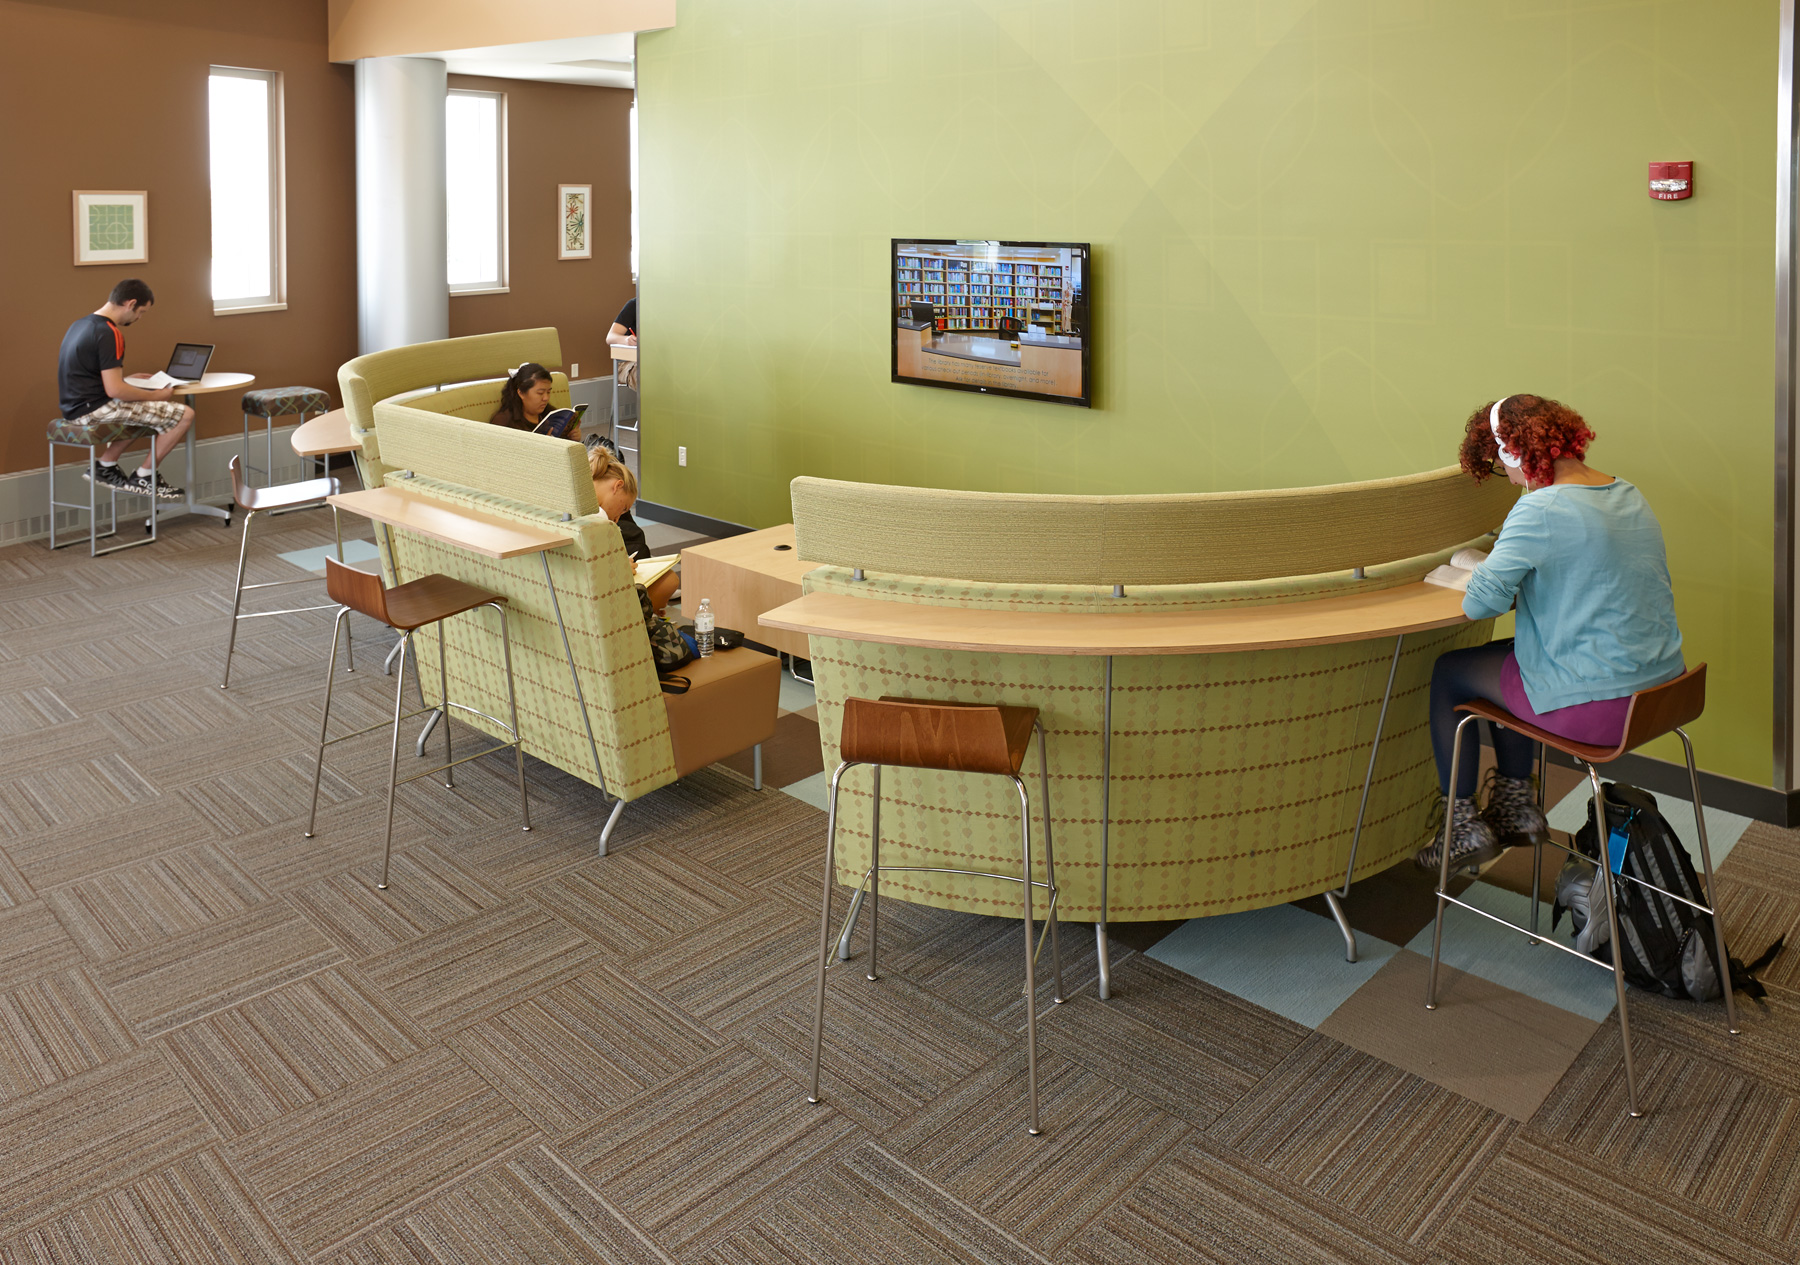 Madison College WI Arcadia Intima Seating Coupled With Allermuir Scoop Stools Create A Unique Comfortable Study Space For Students